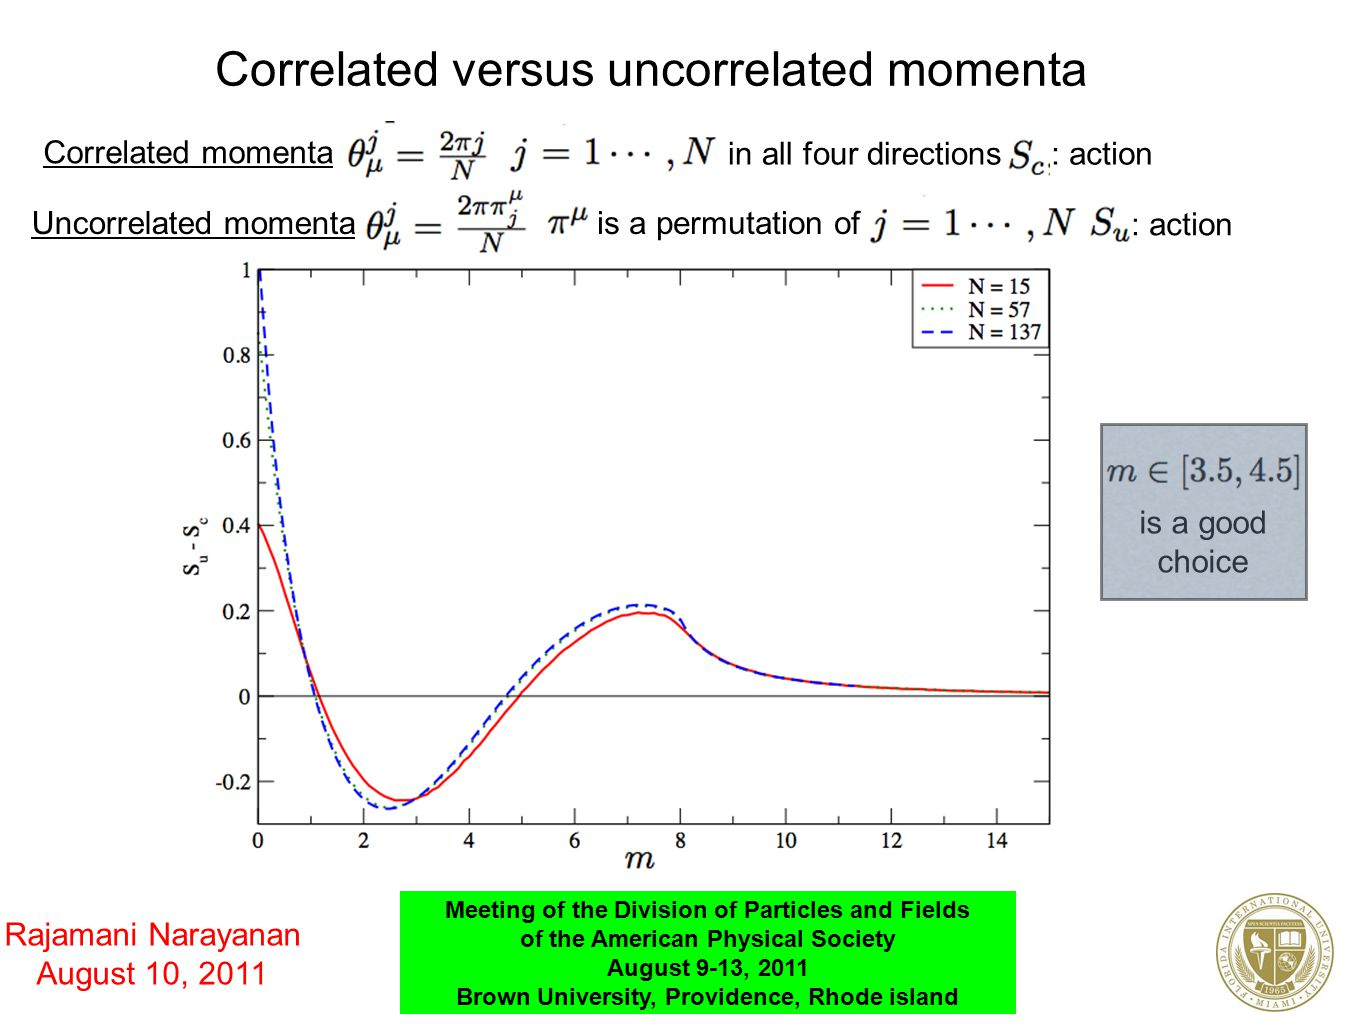 Correlated versus uncorrelated momenta Correlated momenta in all four directions: action Uncorrelated momentais a permutation of : action is a good choice Rajamani Narayanan August 10, 2011 Meeting of the Division of Particles and Fields of the American Physical Society August 9-13, 2011 Brown University, Providence, Rhode island